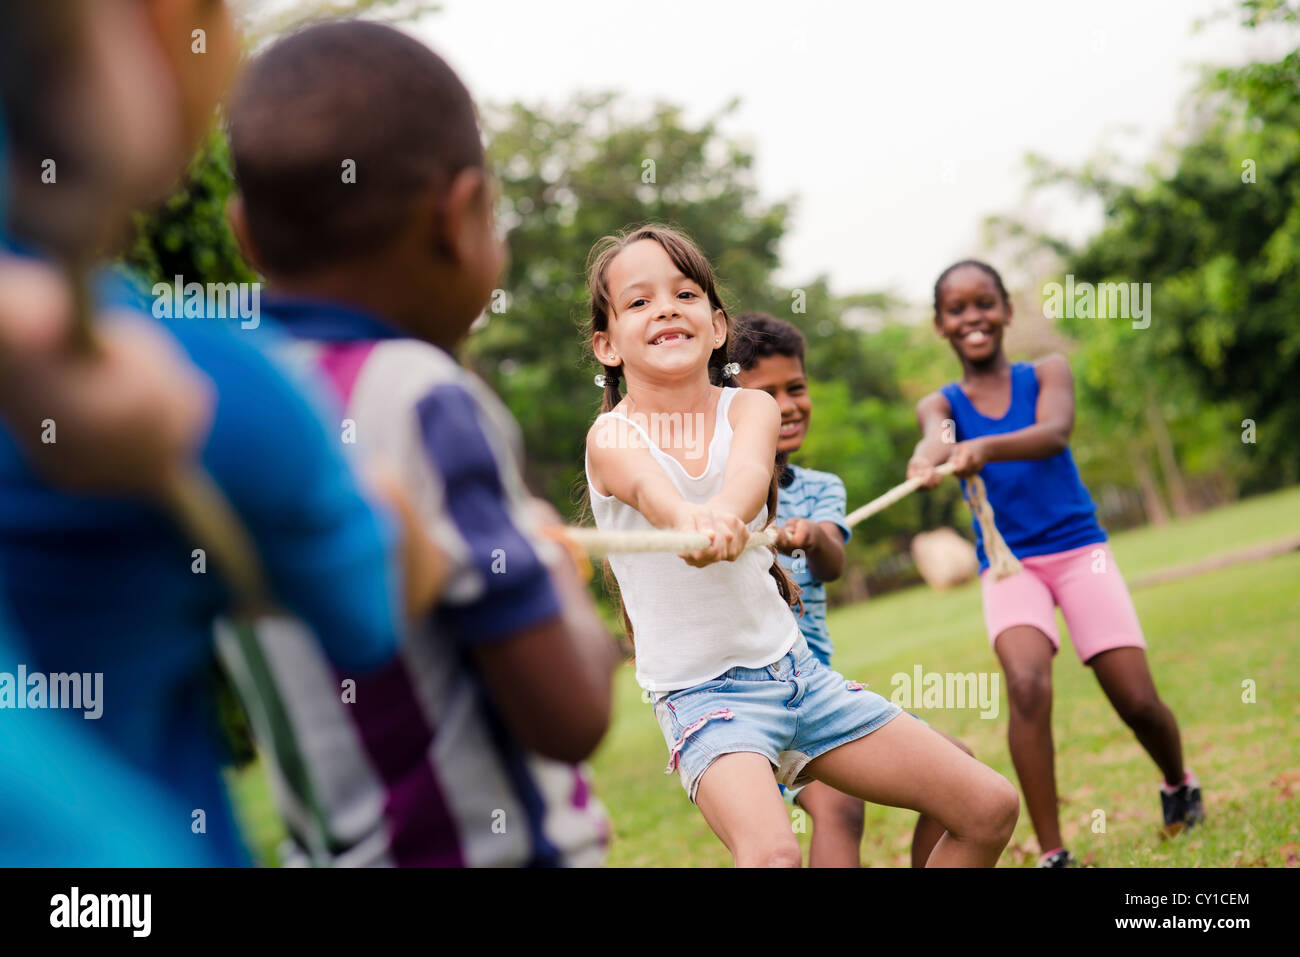 Children and recreation, group of happy multiethnic school kids playing tug-of-war with rope in city park. Summer - Stock Image